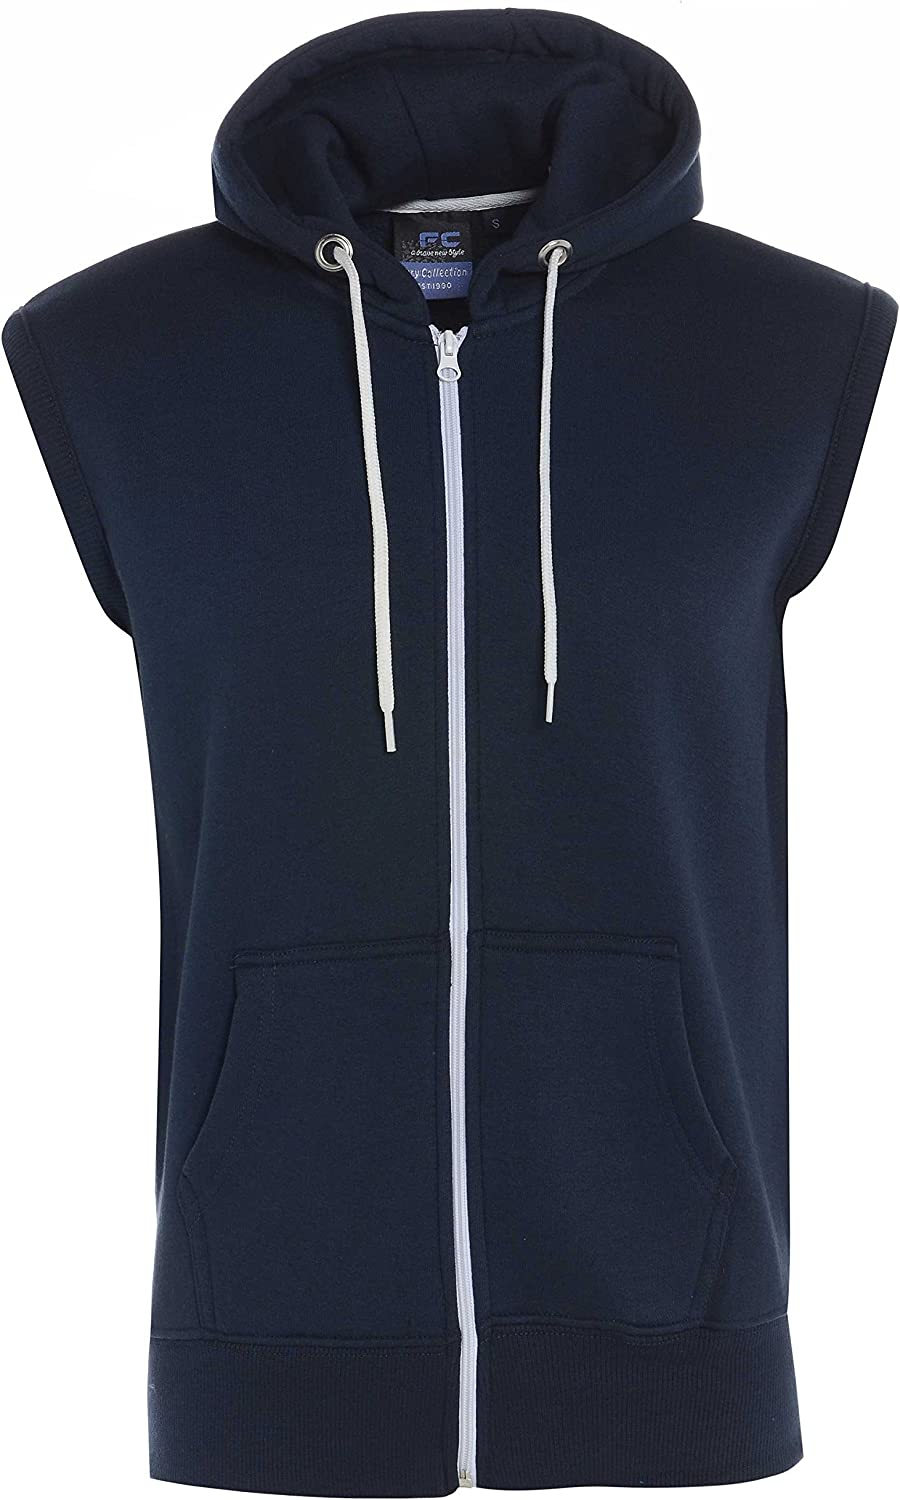 Fashion Oasis New Mens Hooded Plain Sleeveless Fleece TOP//Jacket//Gilet//Waistcoat//Bodywarmer S-XL